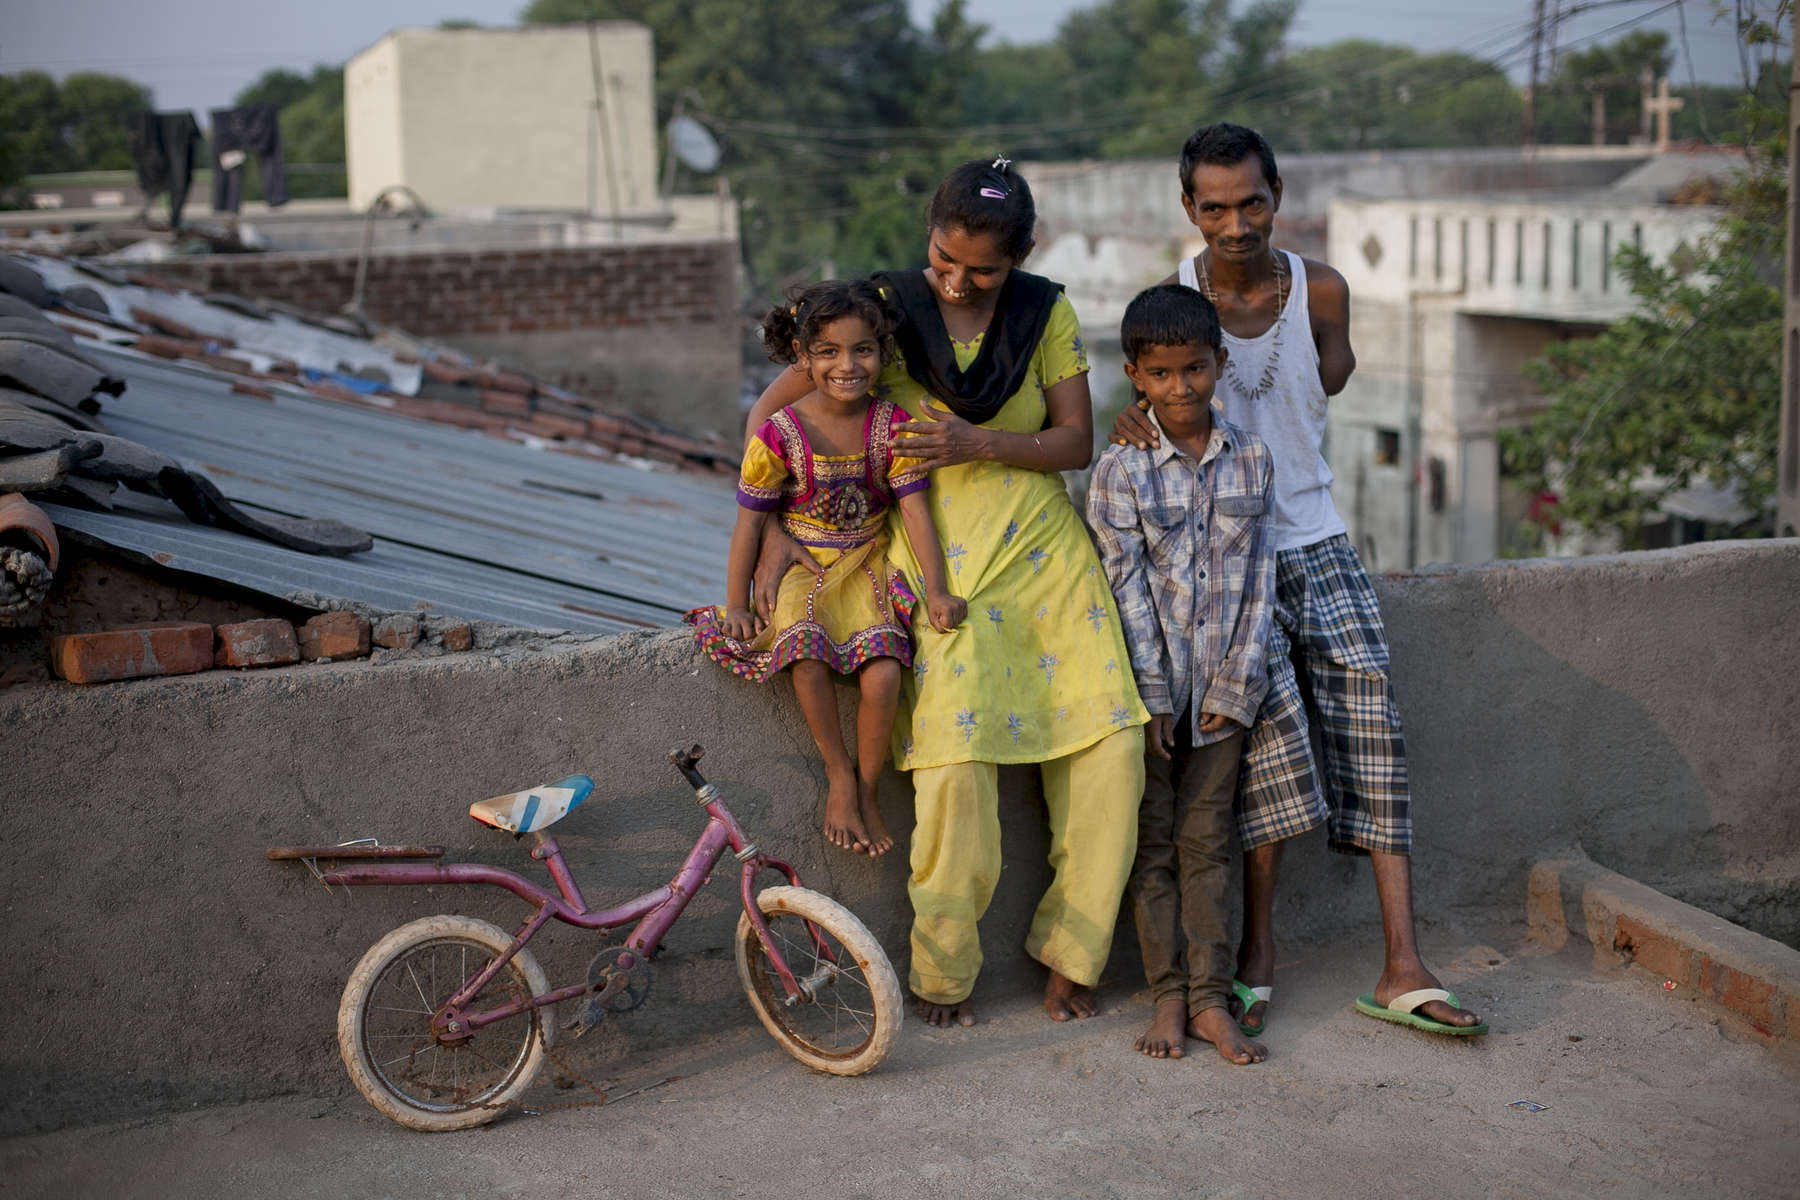 Two time former surrogate mother Kokila Mecwan stands for a photograph with her husband and kids on the roof of their home. Kokila was a surrogate for parents from the UK and Canada. With the money she earned she was able to take care of her husband's medical expenses after he lost his arm in a train accident, build a roof with a terrace for her home, build a toilet and kitchen, send her children to private boarding schools, and more.